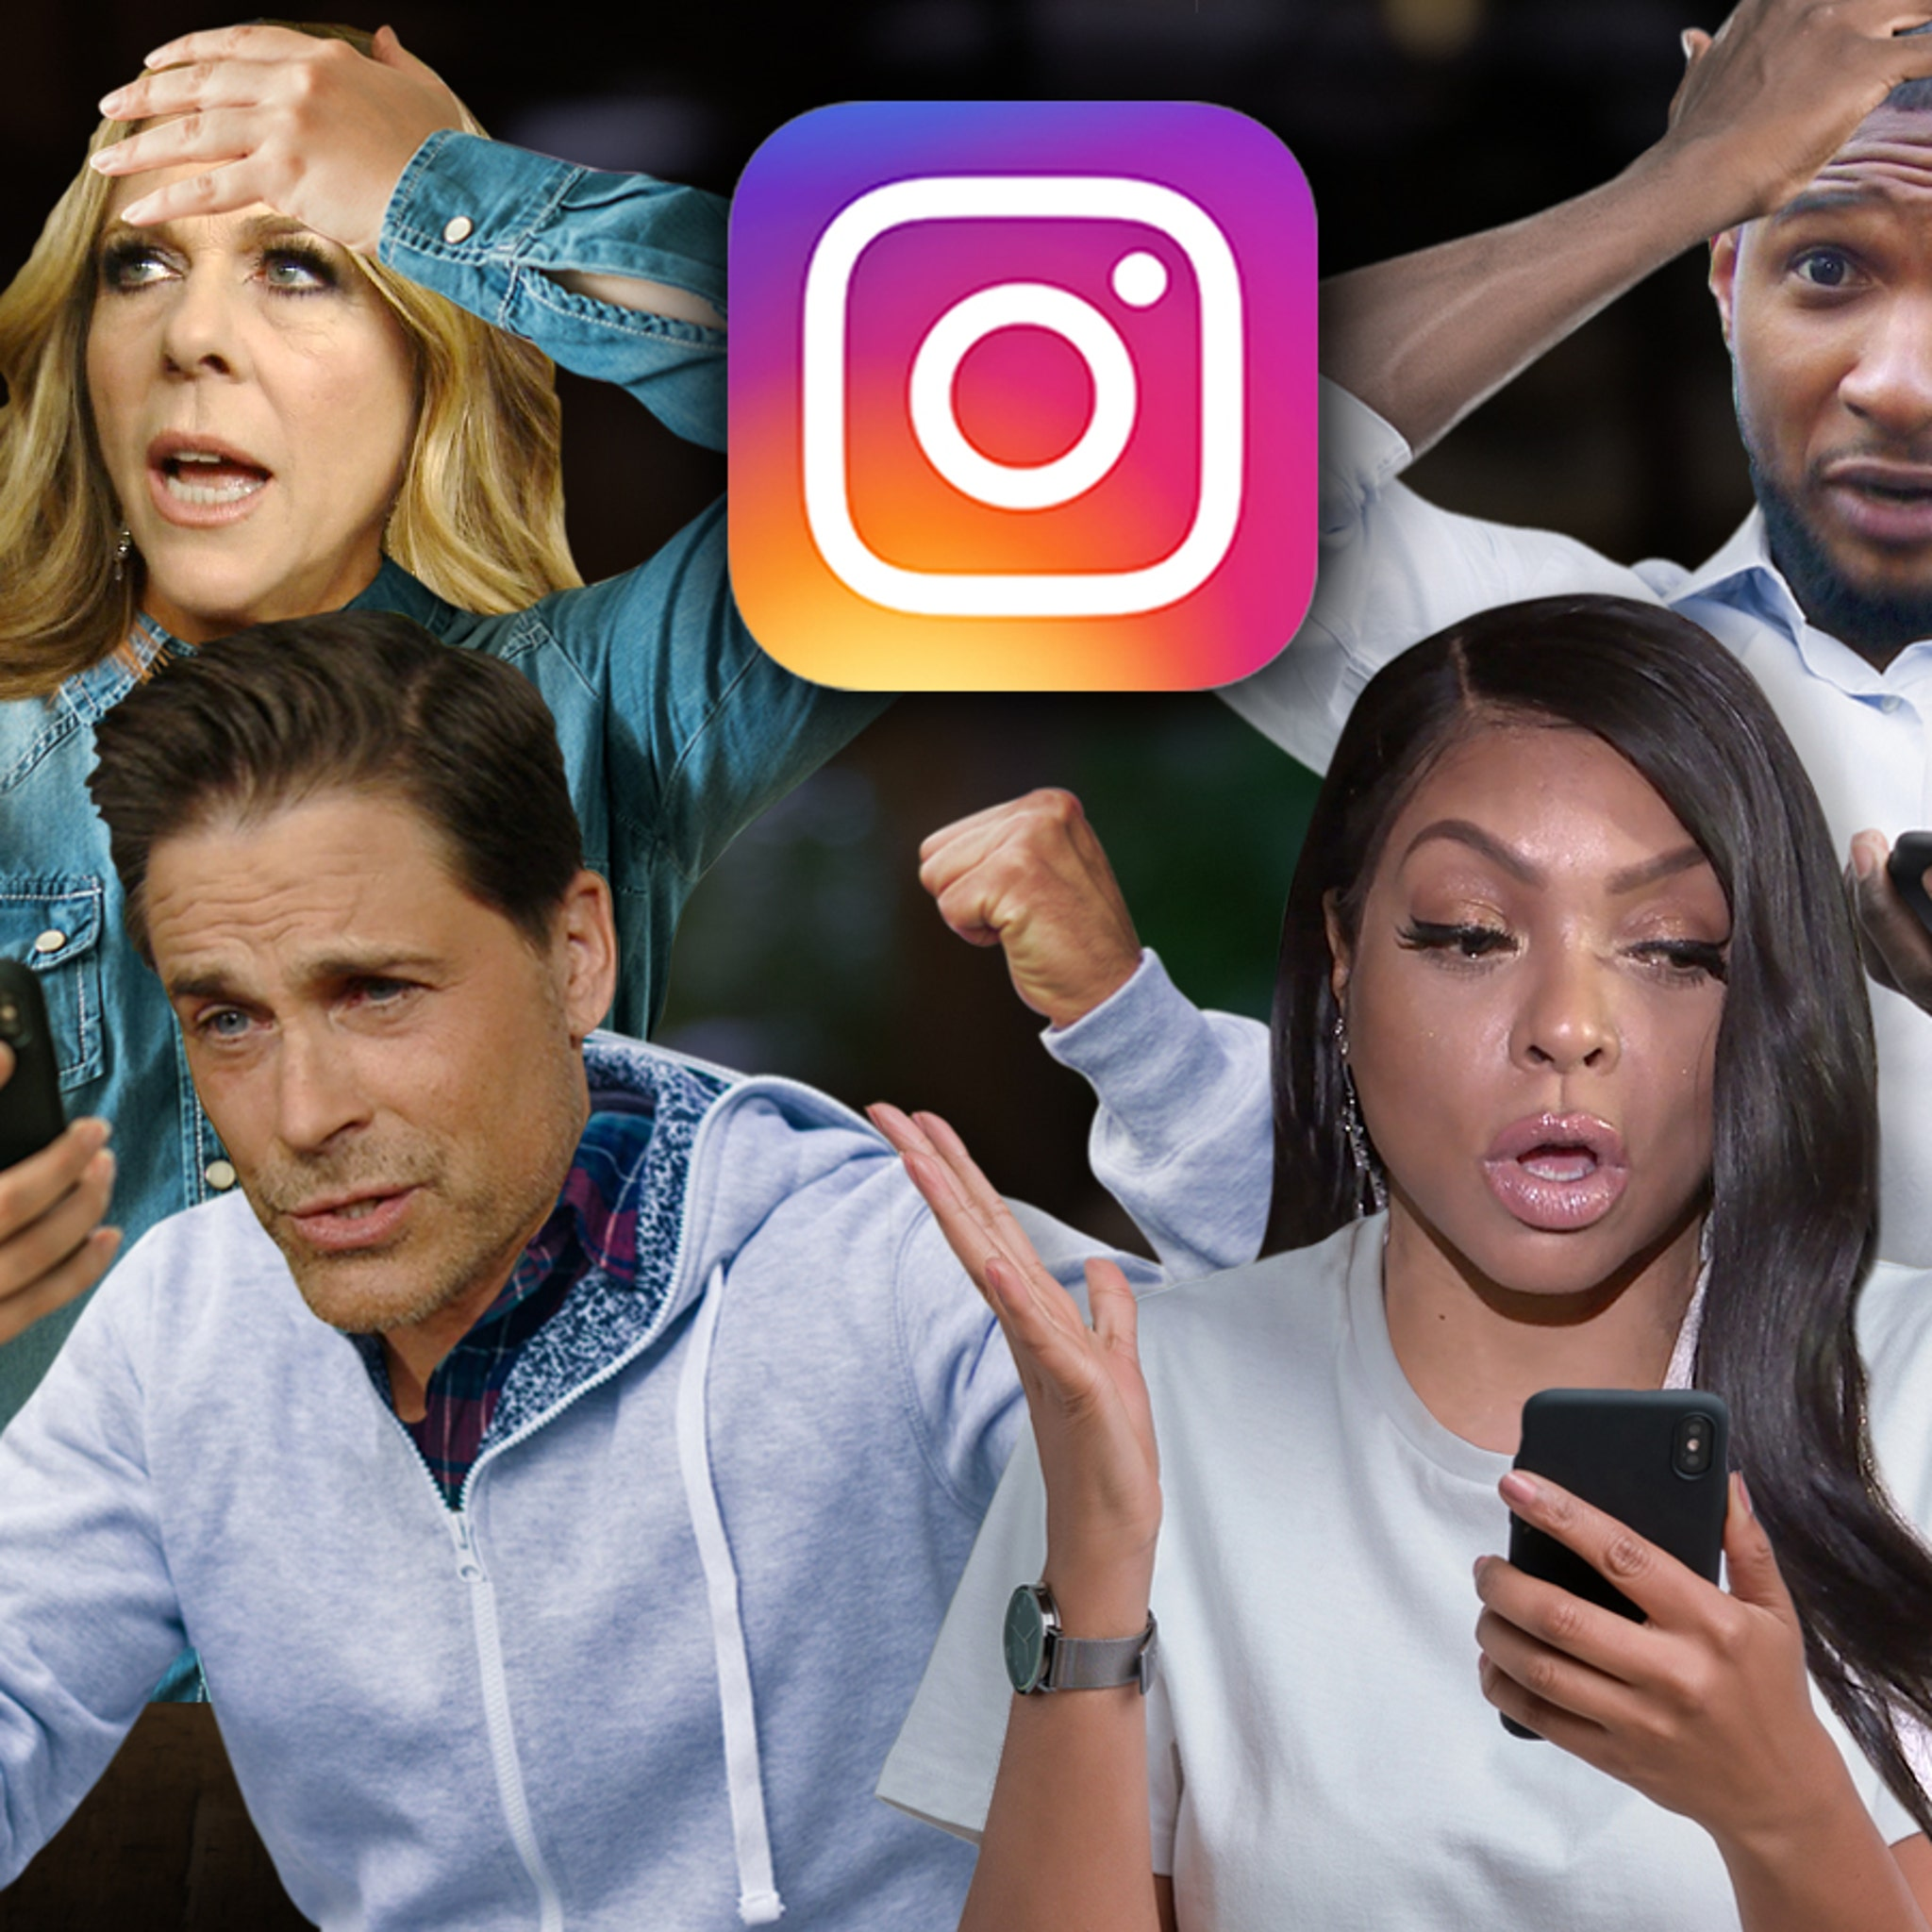 Rob Lowe, Usher & Other Celebs Fall for Viral Instagram Hoax